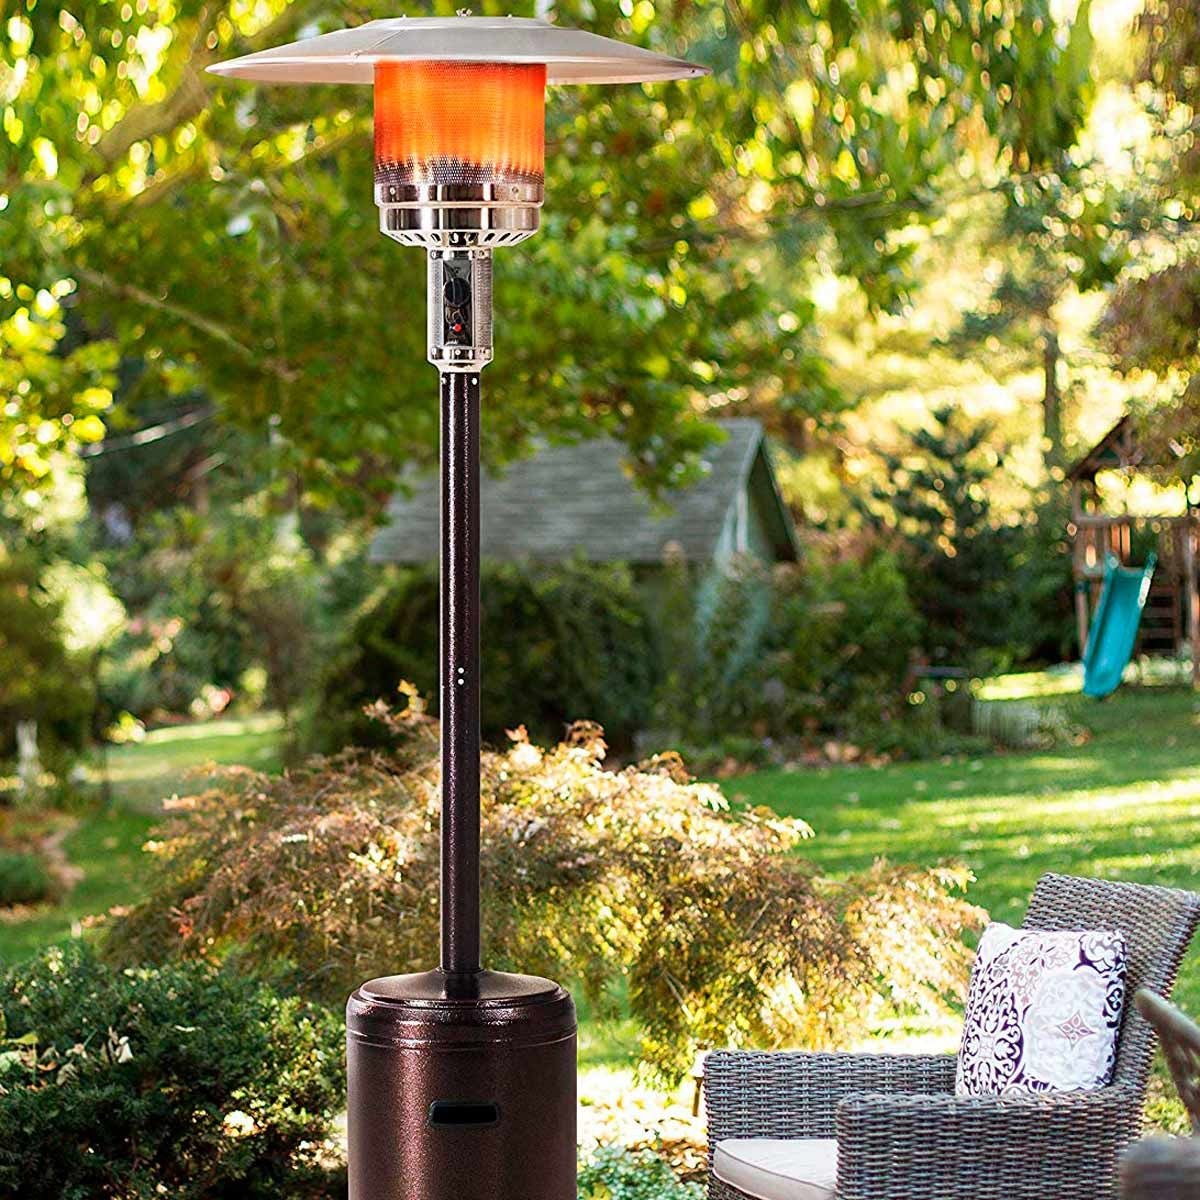 13 Outdoor Patio Heaters You'll Want in Your Backyard